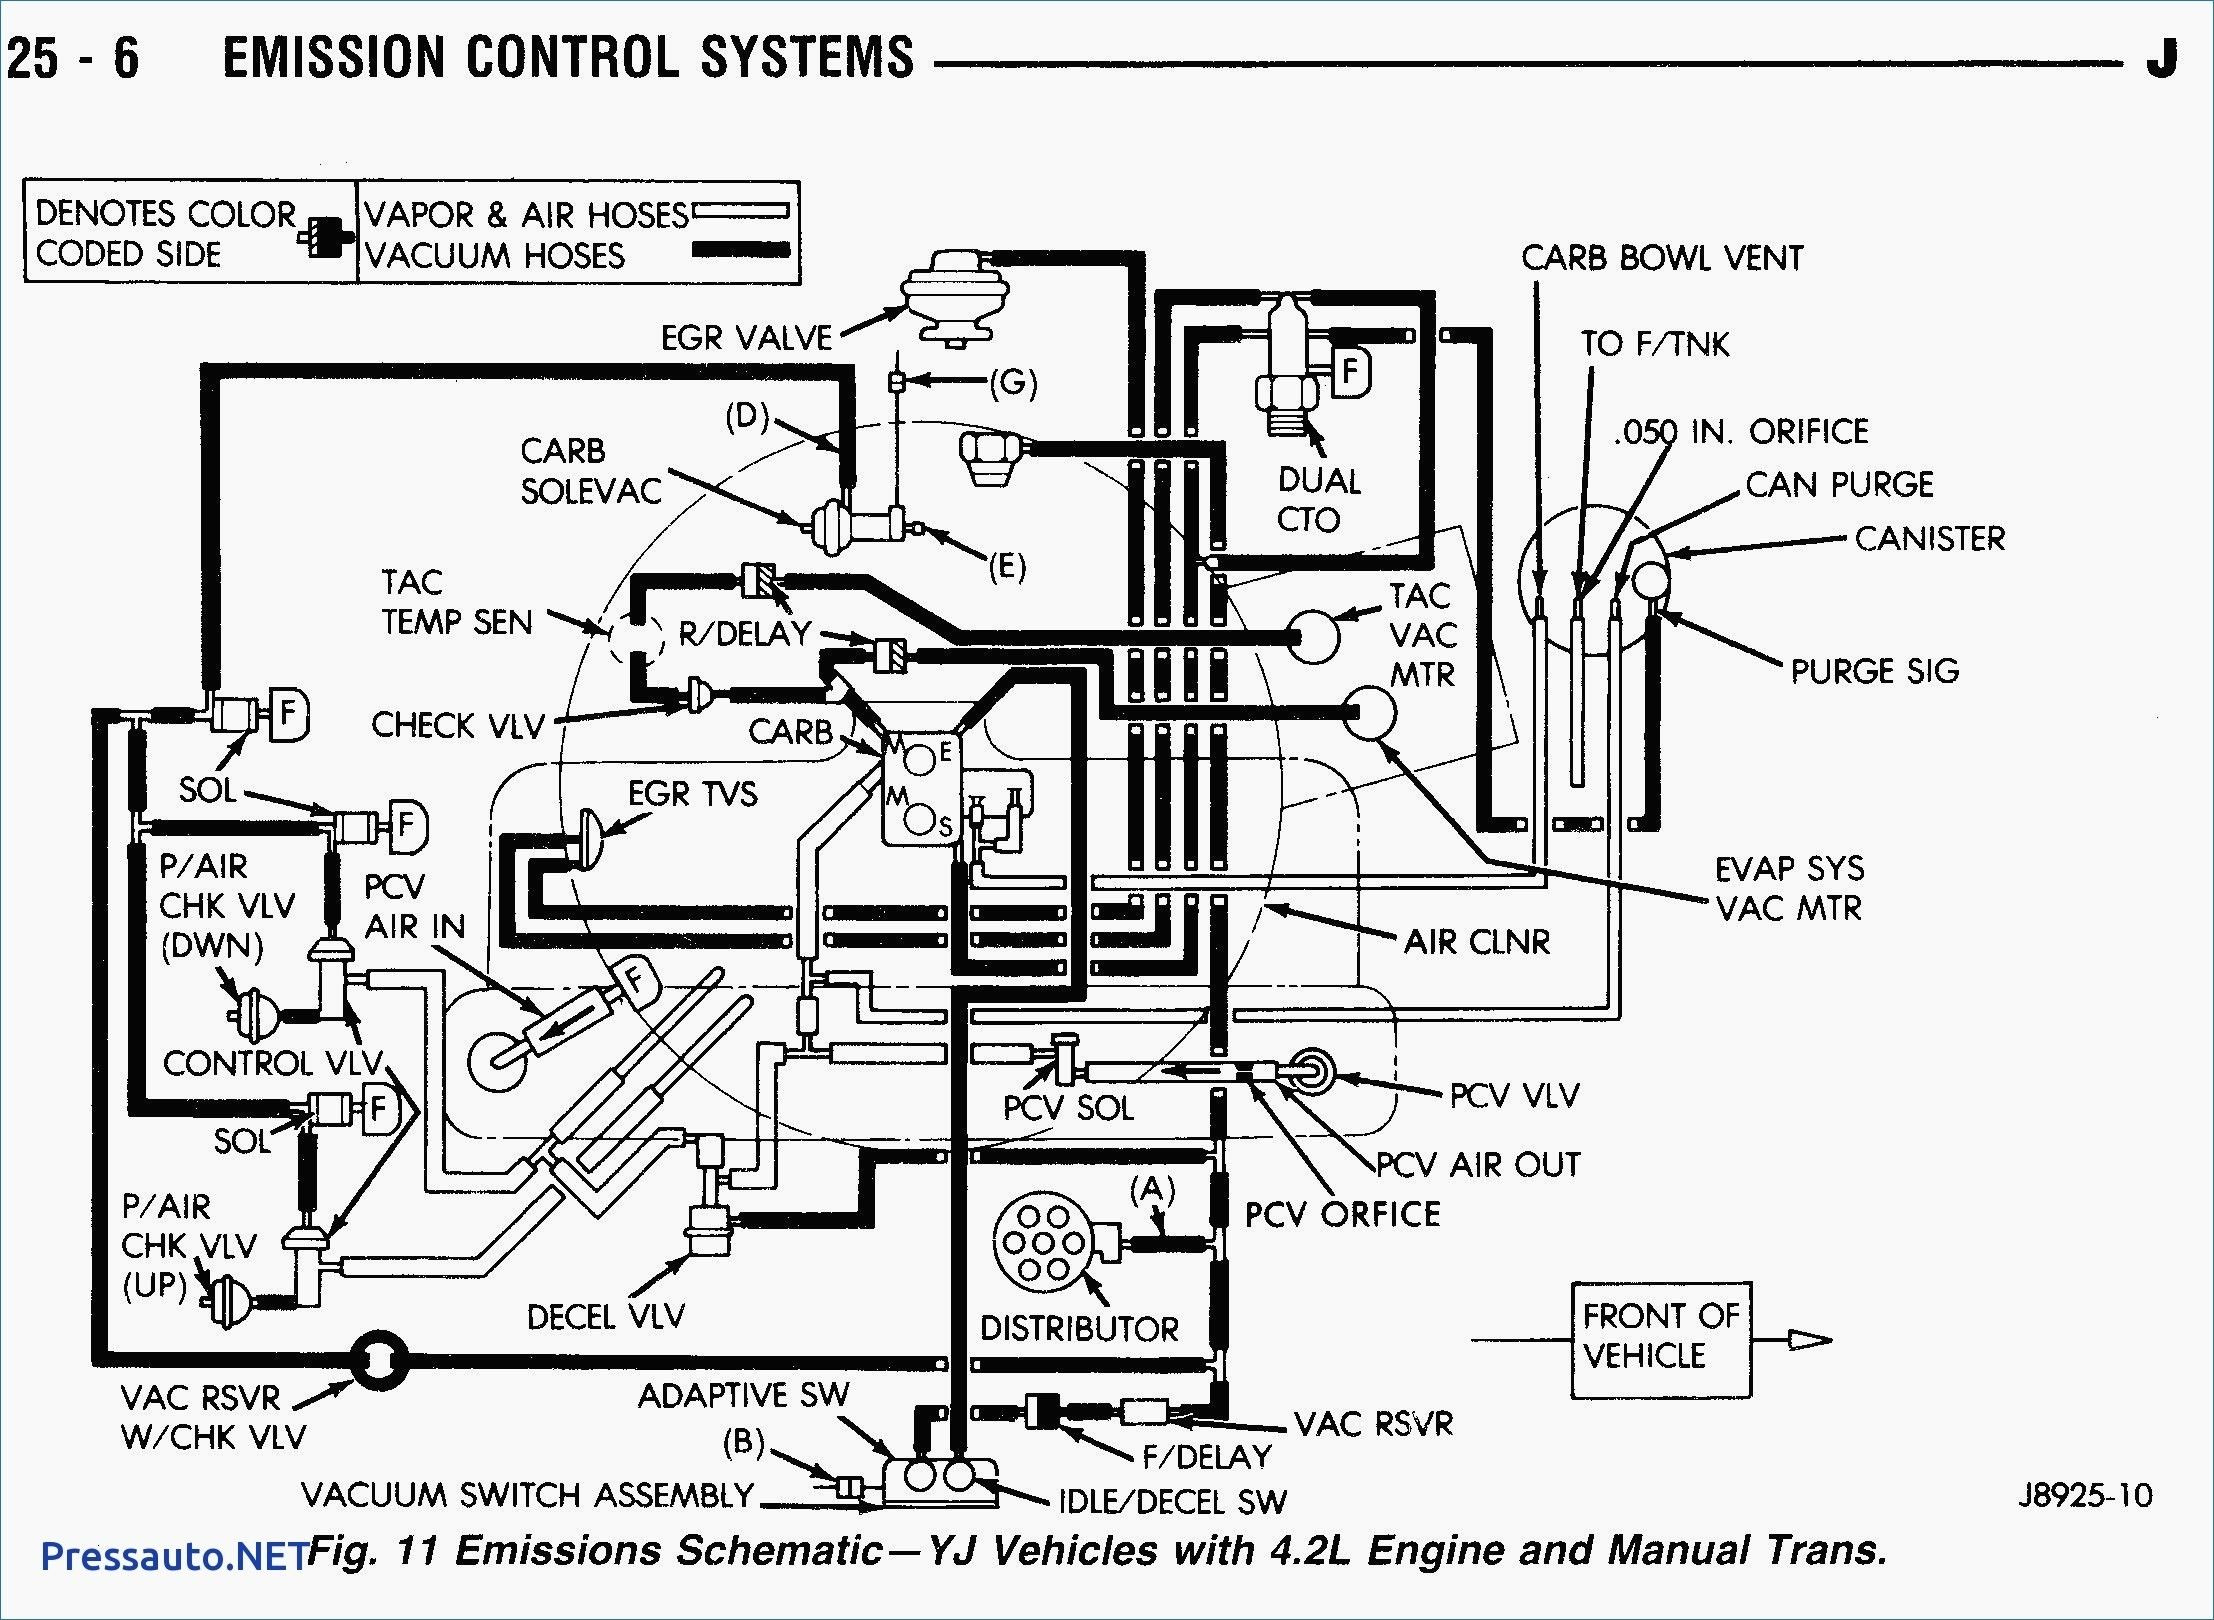 engine wiring harness diagram on 1990 jeep engine wiring diagram regarding 1990 jeep wrangler